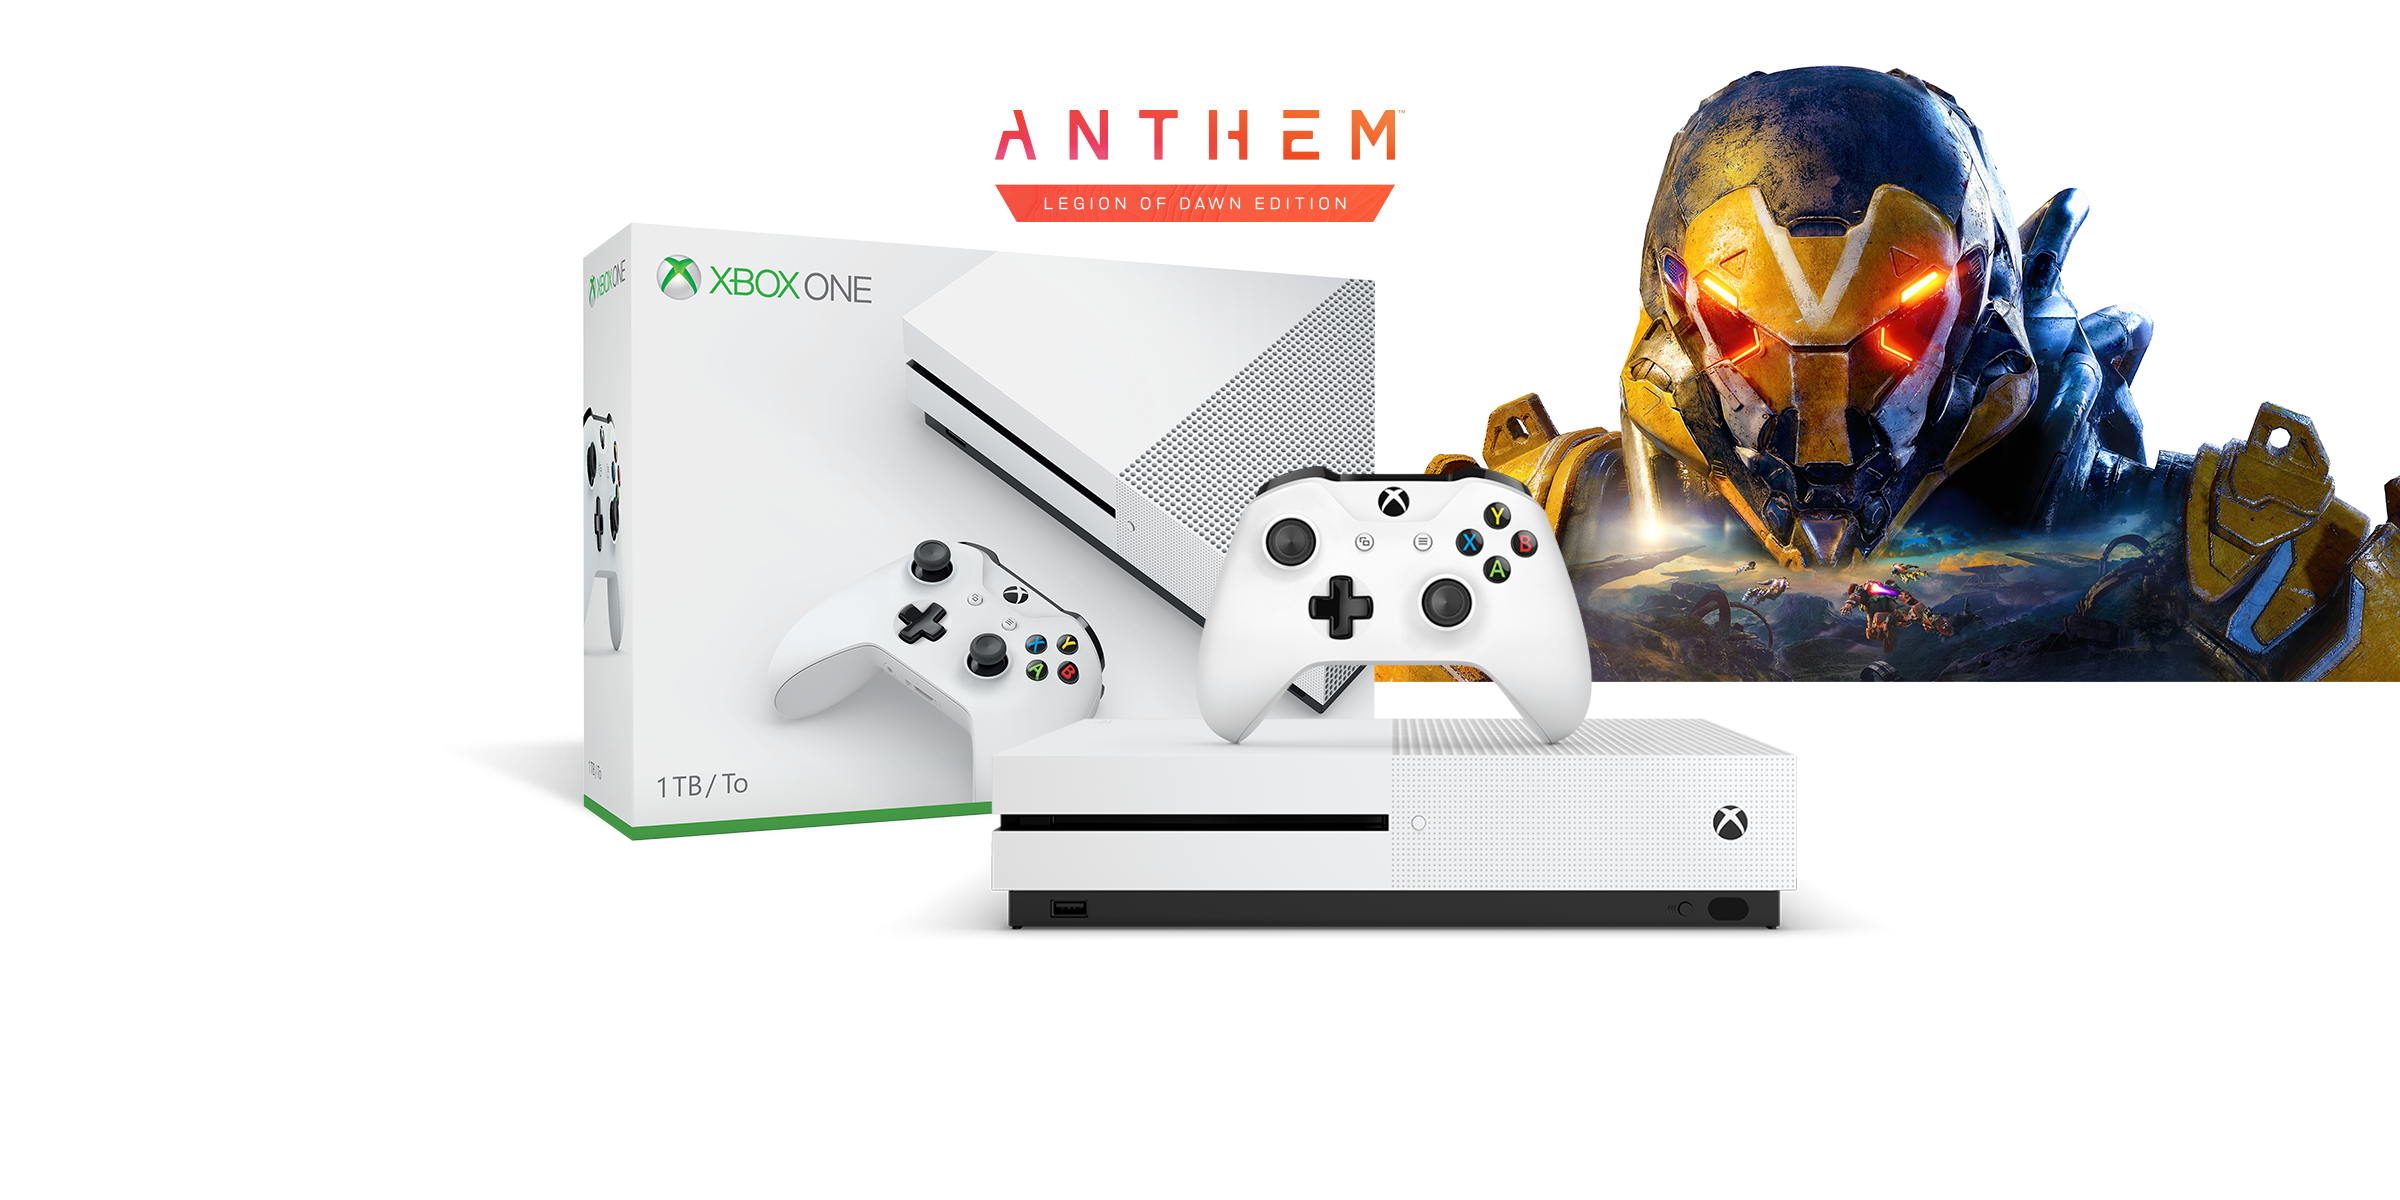 Xbox One S boxart with the Xbox One S console in front of the head of an exosuit